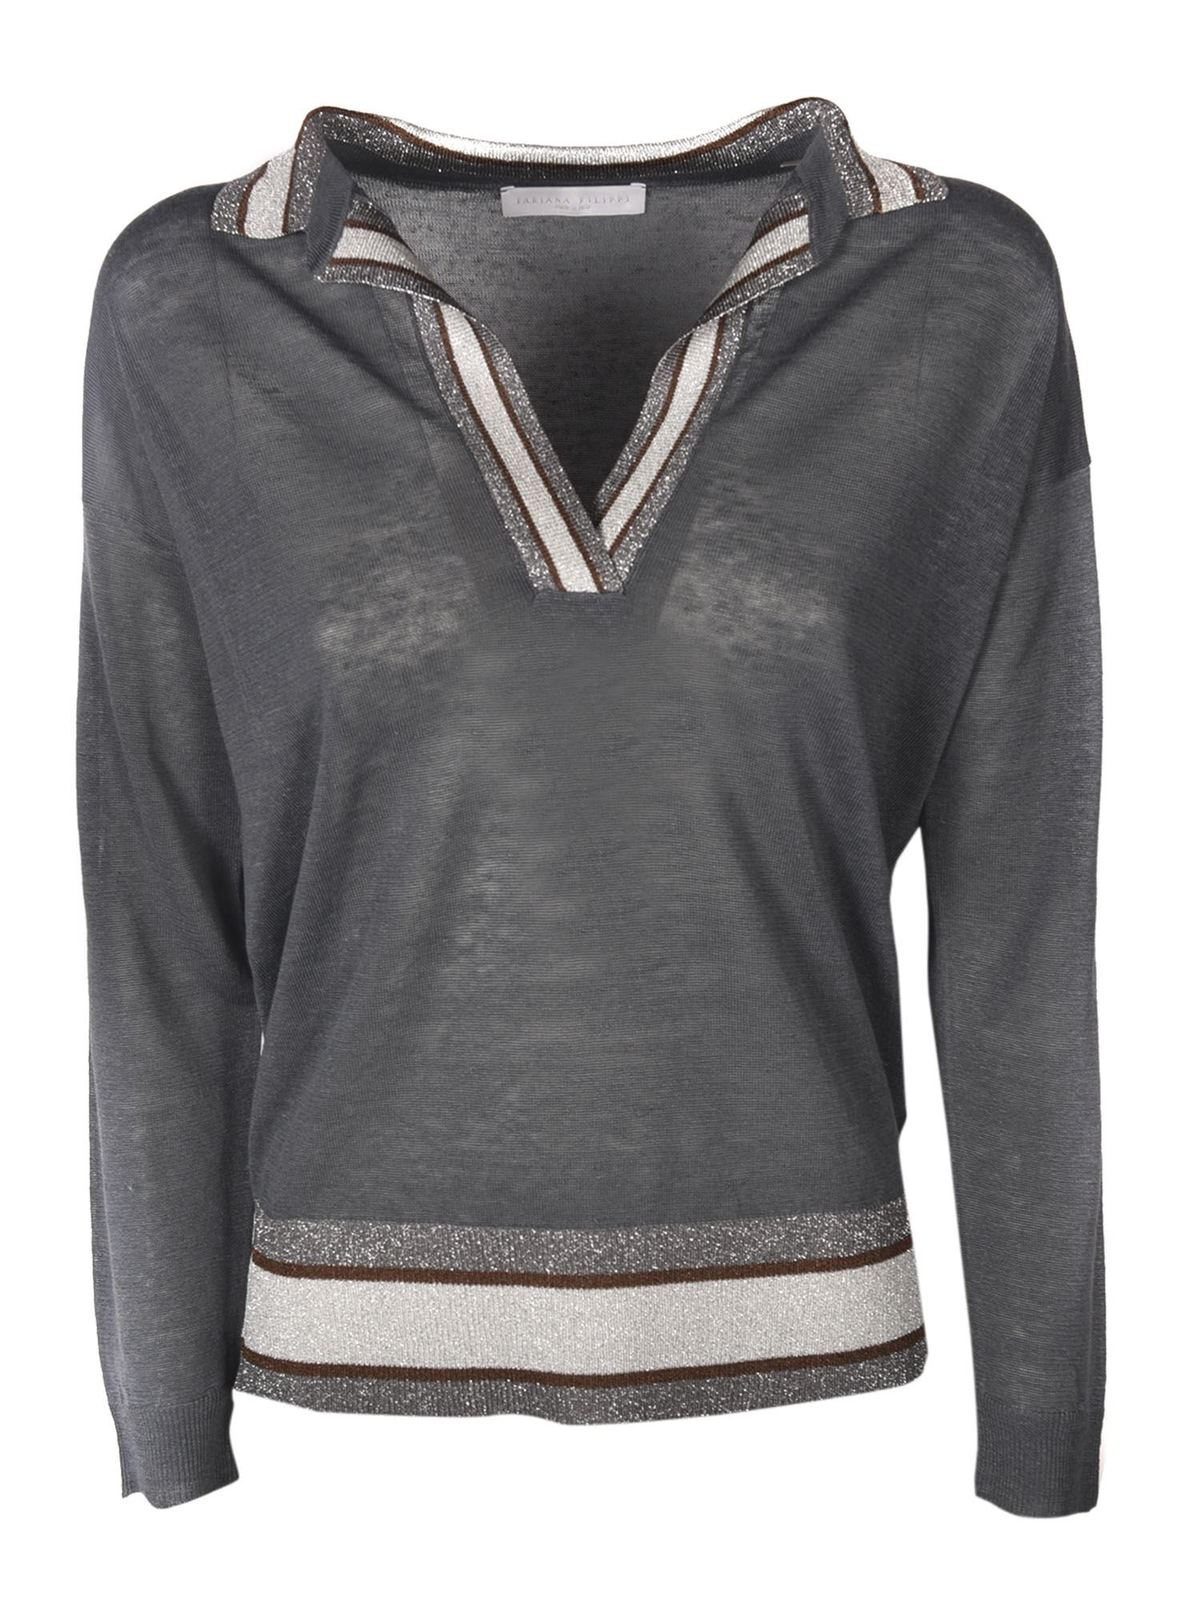 Fabiana Filippi V-NECK SWEATER IN GREY